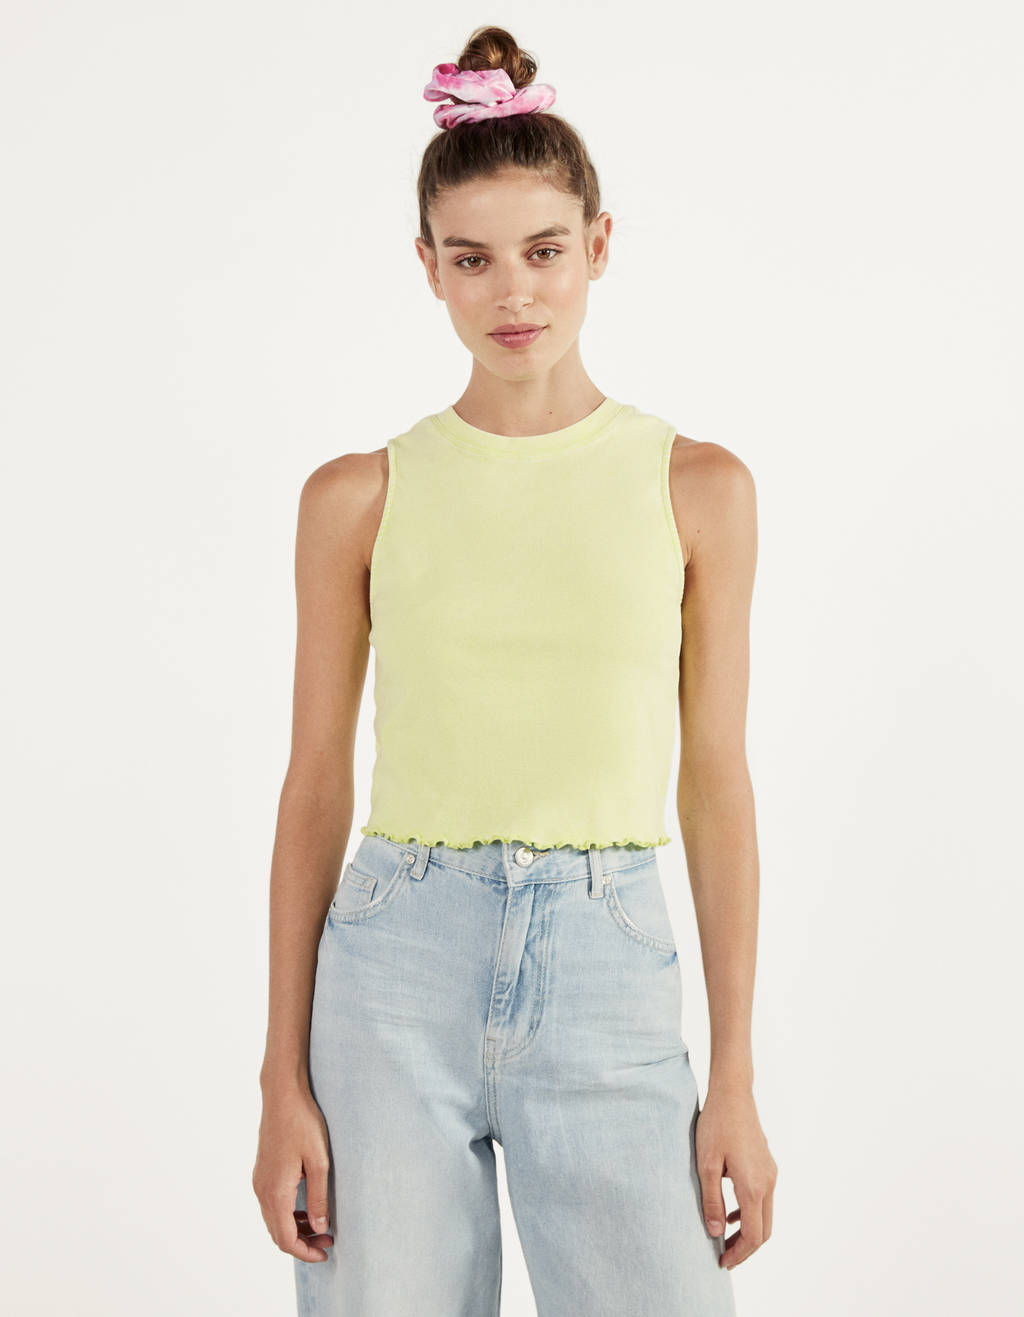 Kolsuz crop top